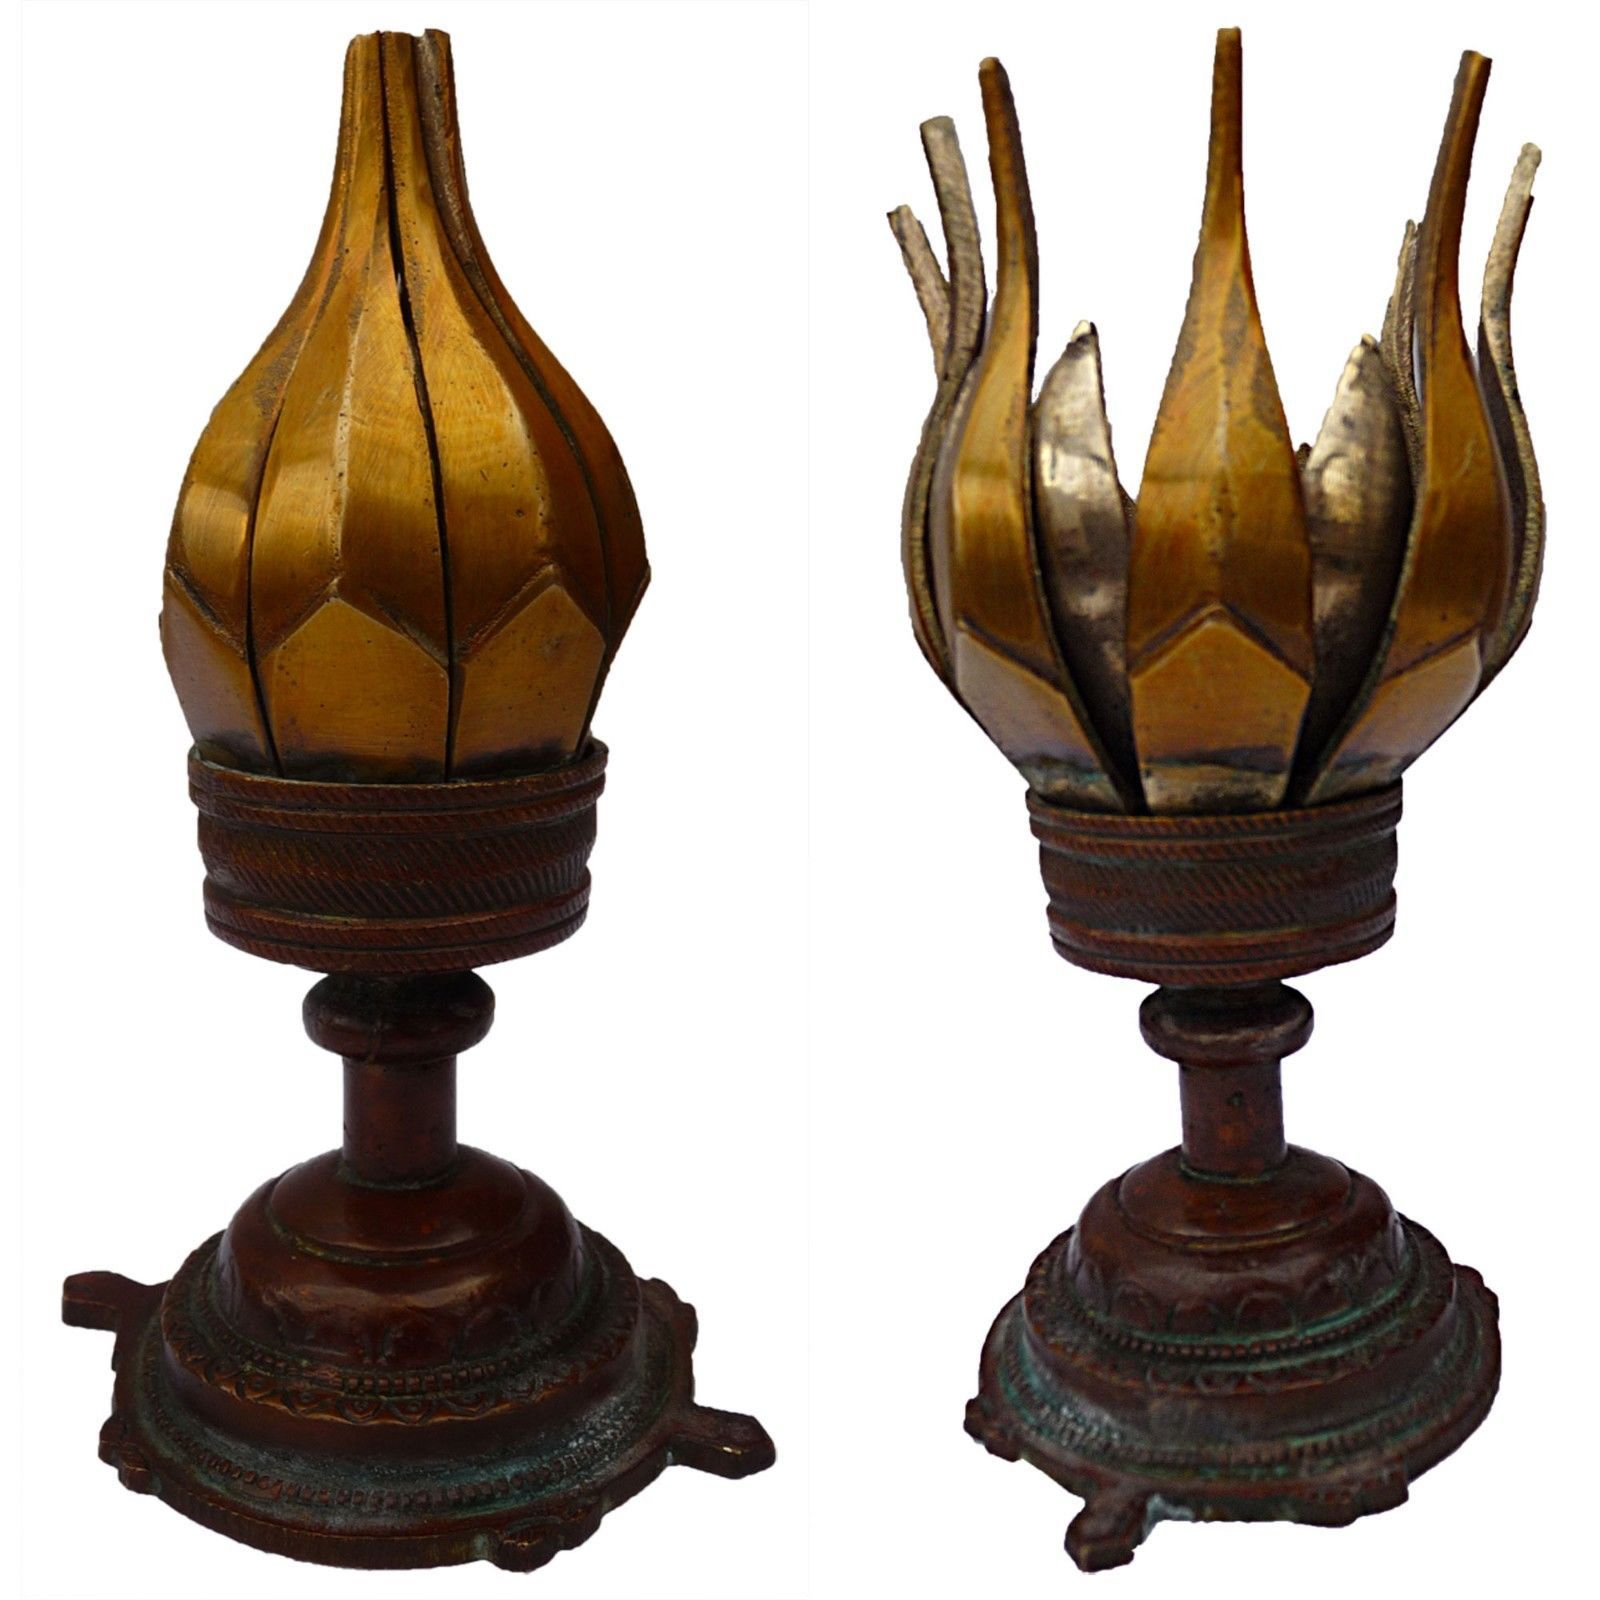 Opening Lotus Incense Burner In Brass